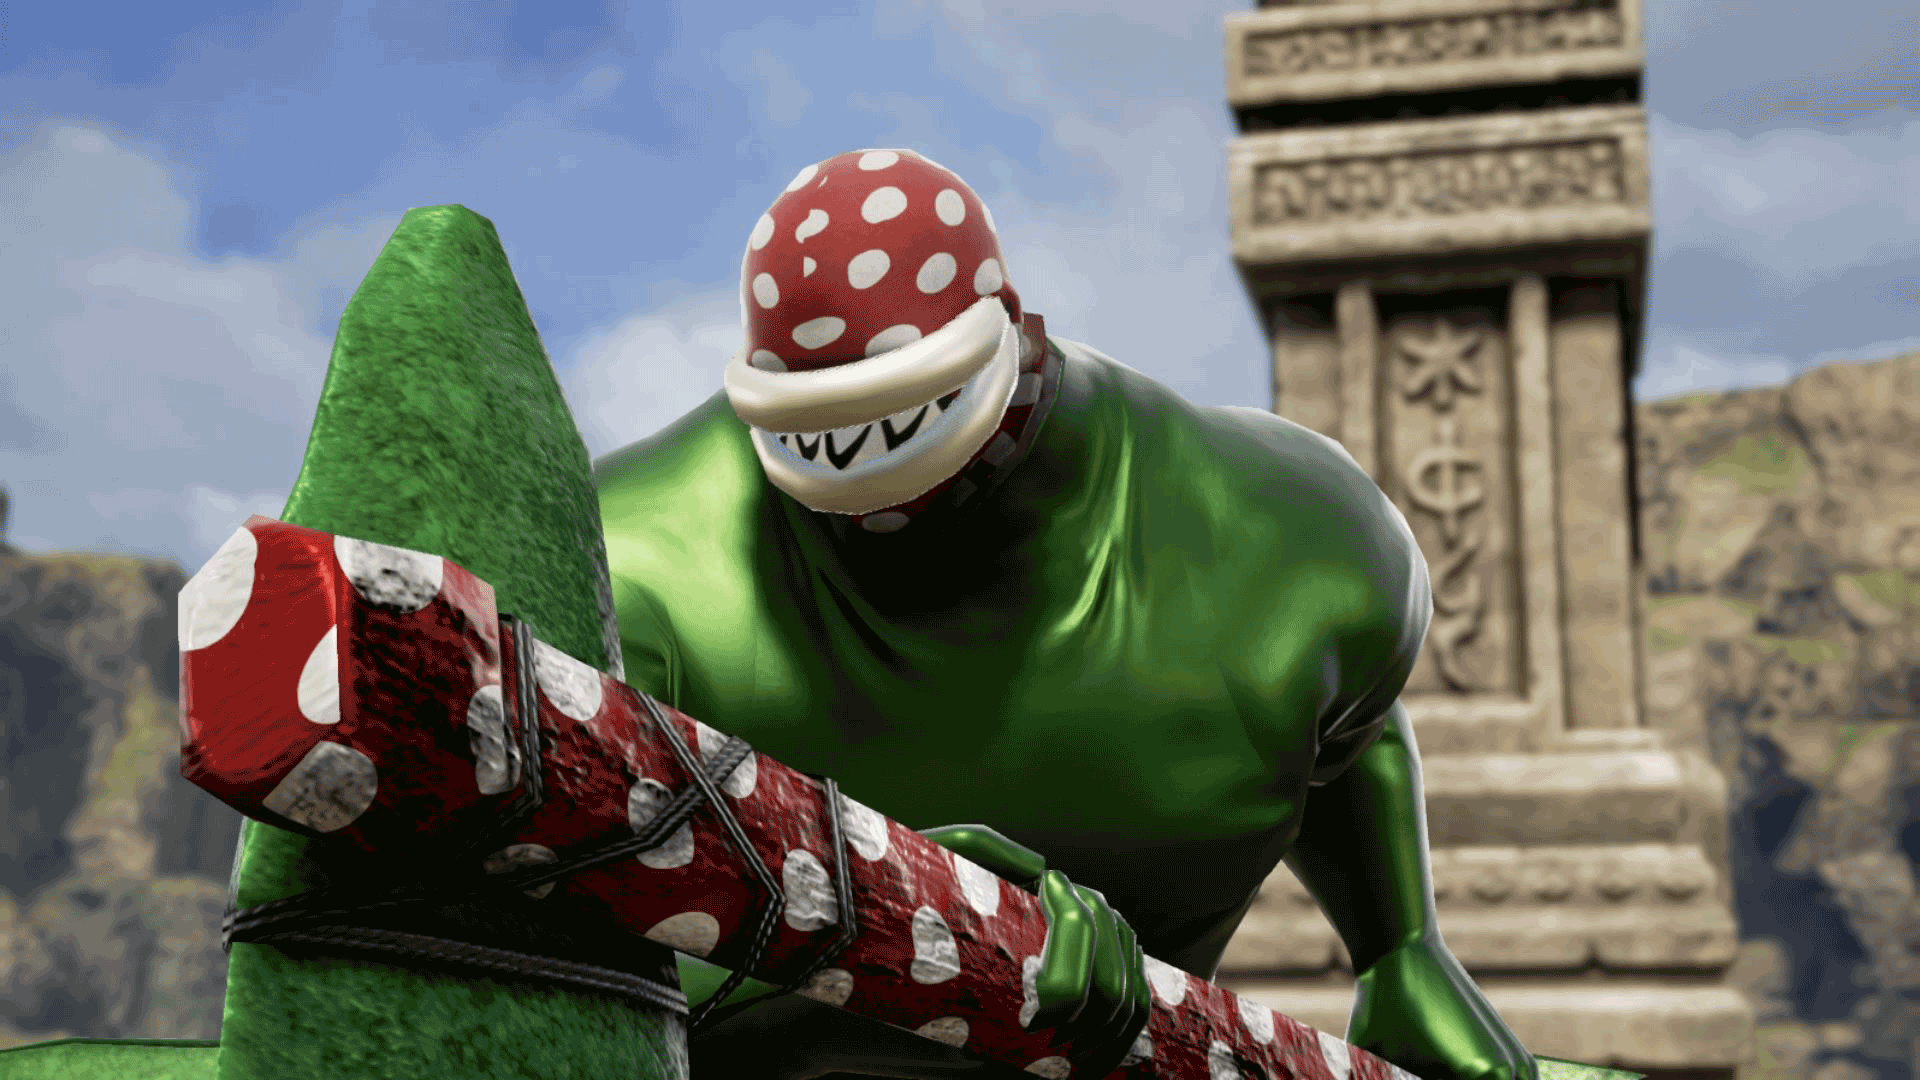 Piranha Plant in Soul Calibur 6 1 out of 5 image gallery